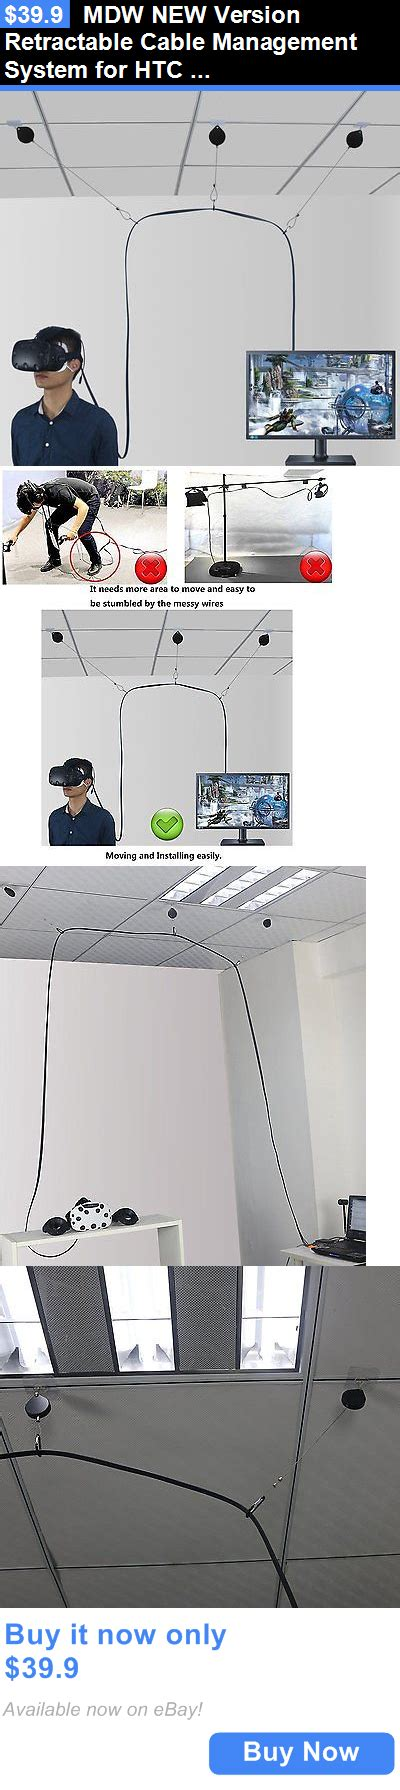 pc  console vr headsets mdw  version retractable